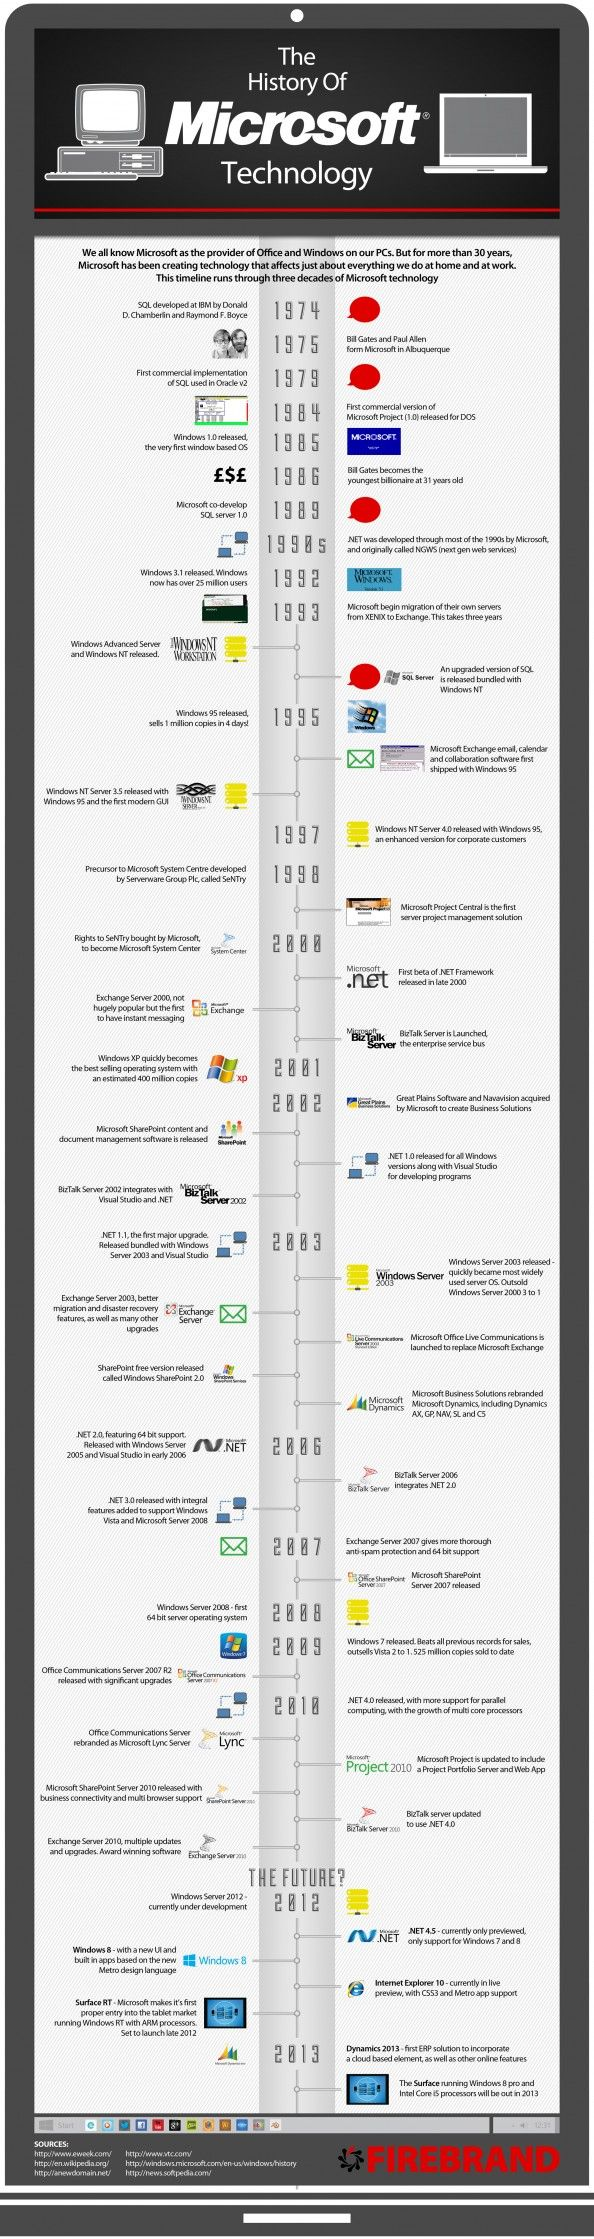 An Infographic looking at the History of Microsoft Technology over the last 30 years covering all major launches. This includes, Windows Server, SQL S…